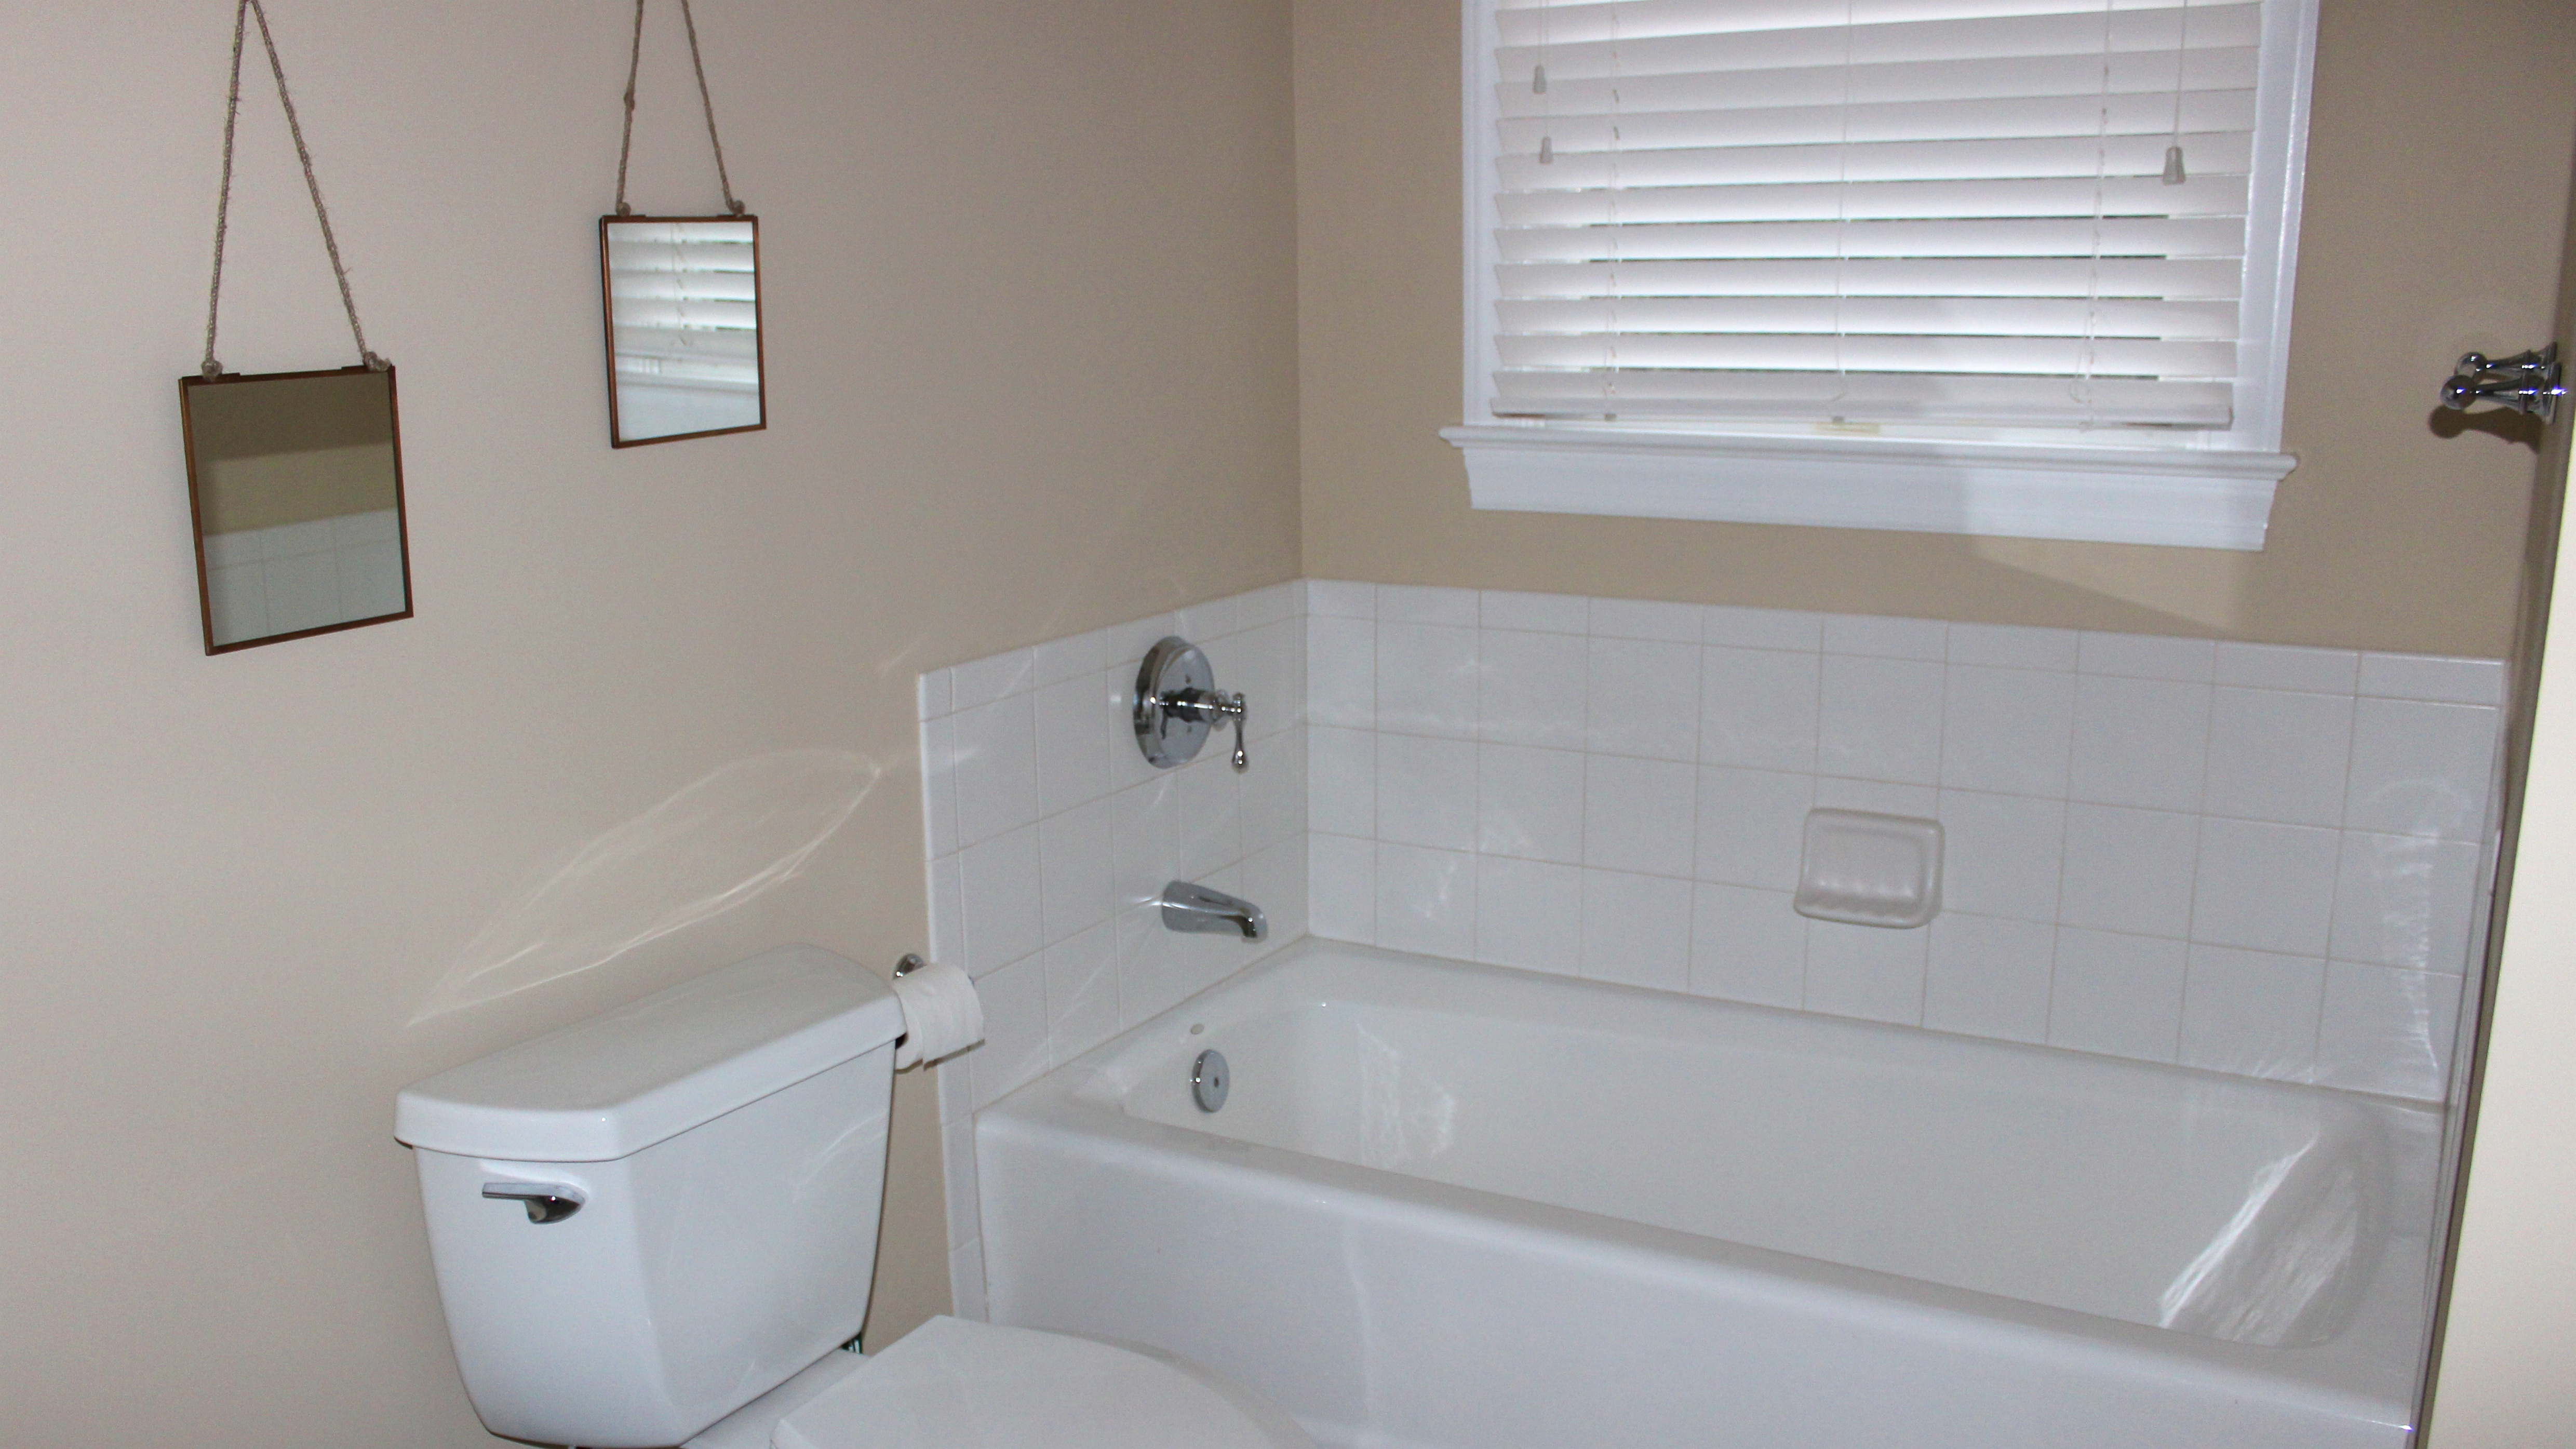 There is a also a separate tub.